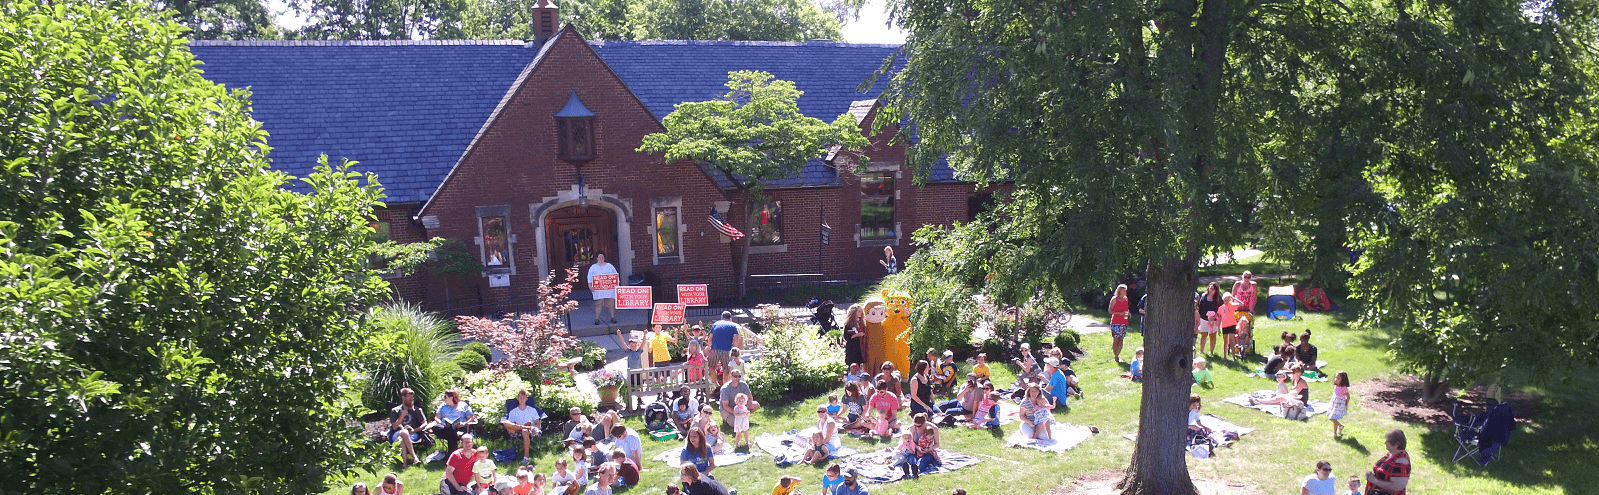 Event on the library lawn